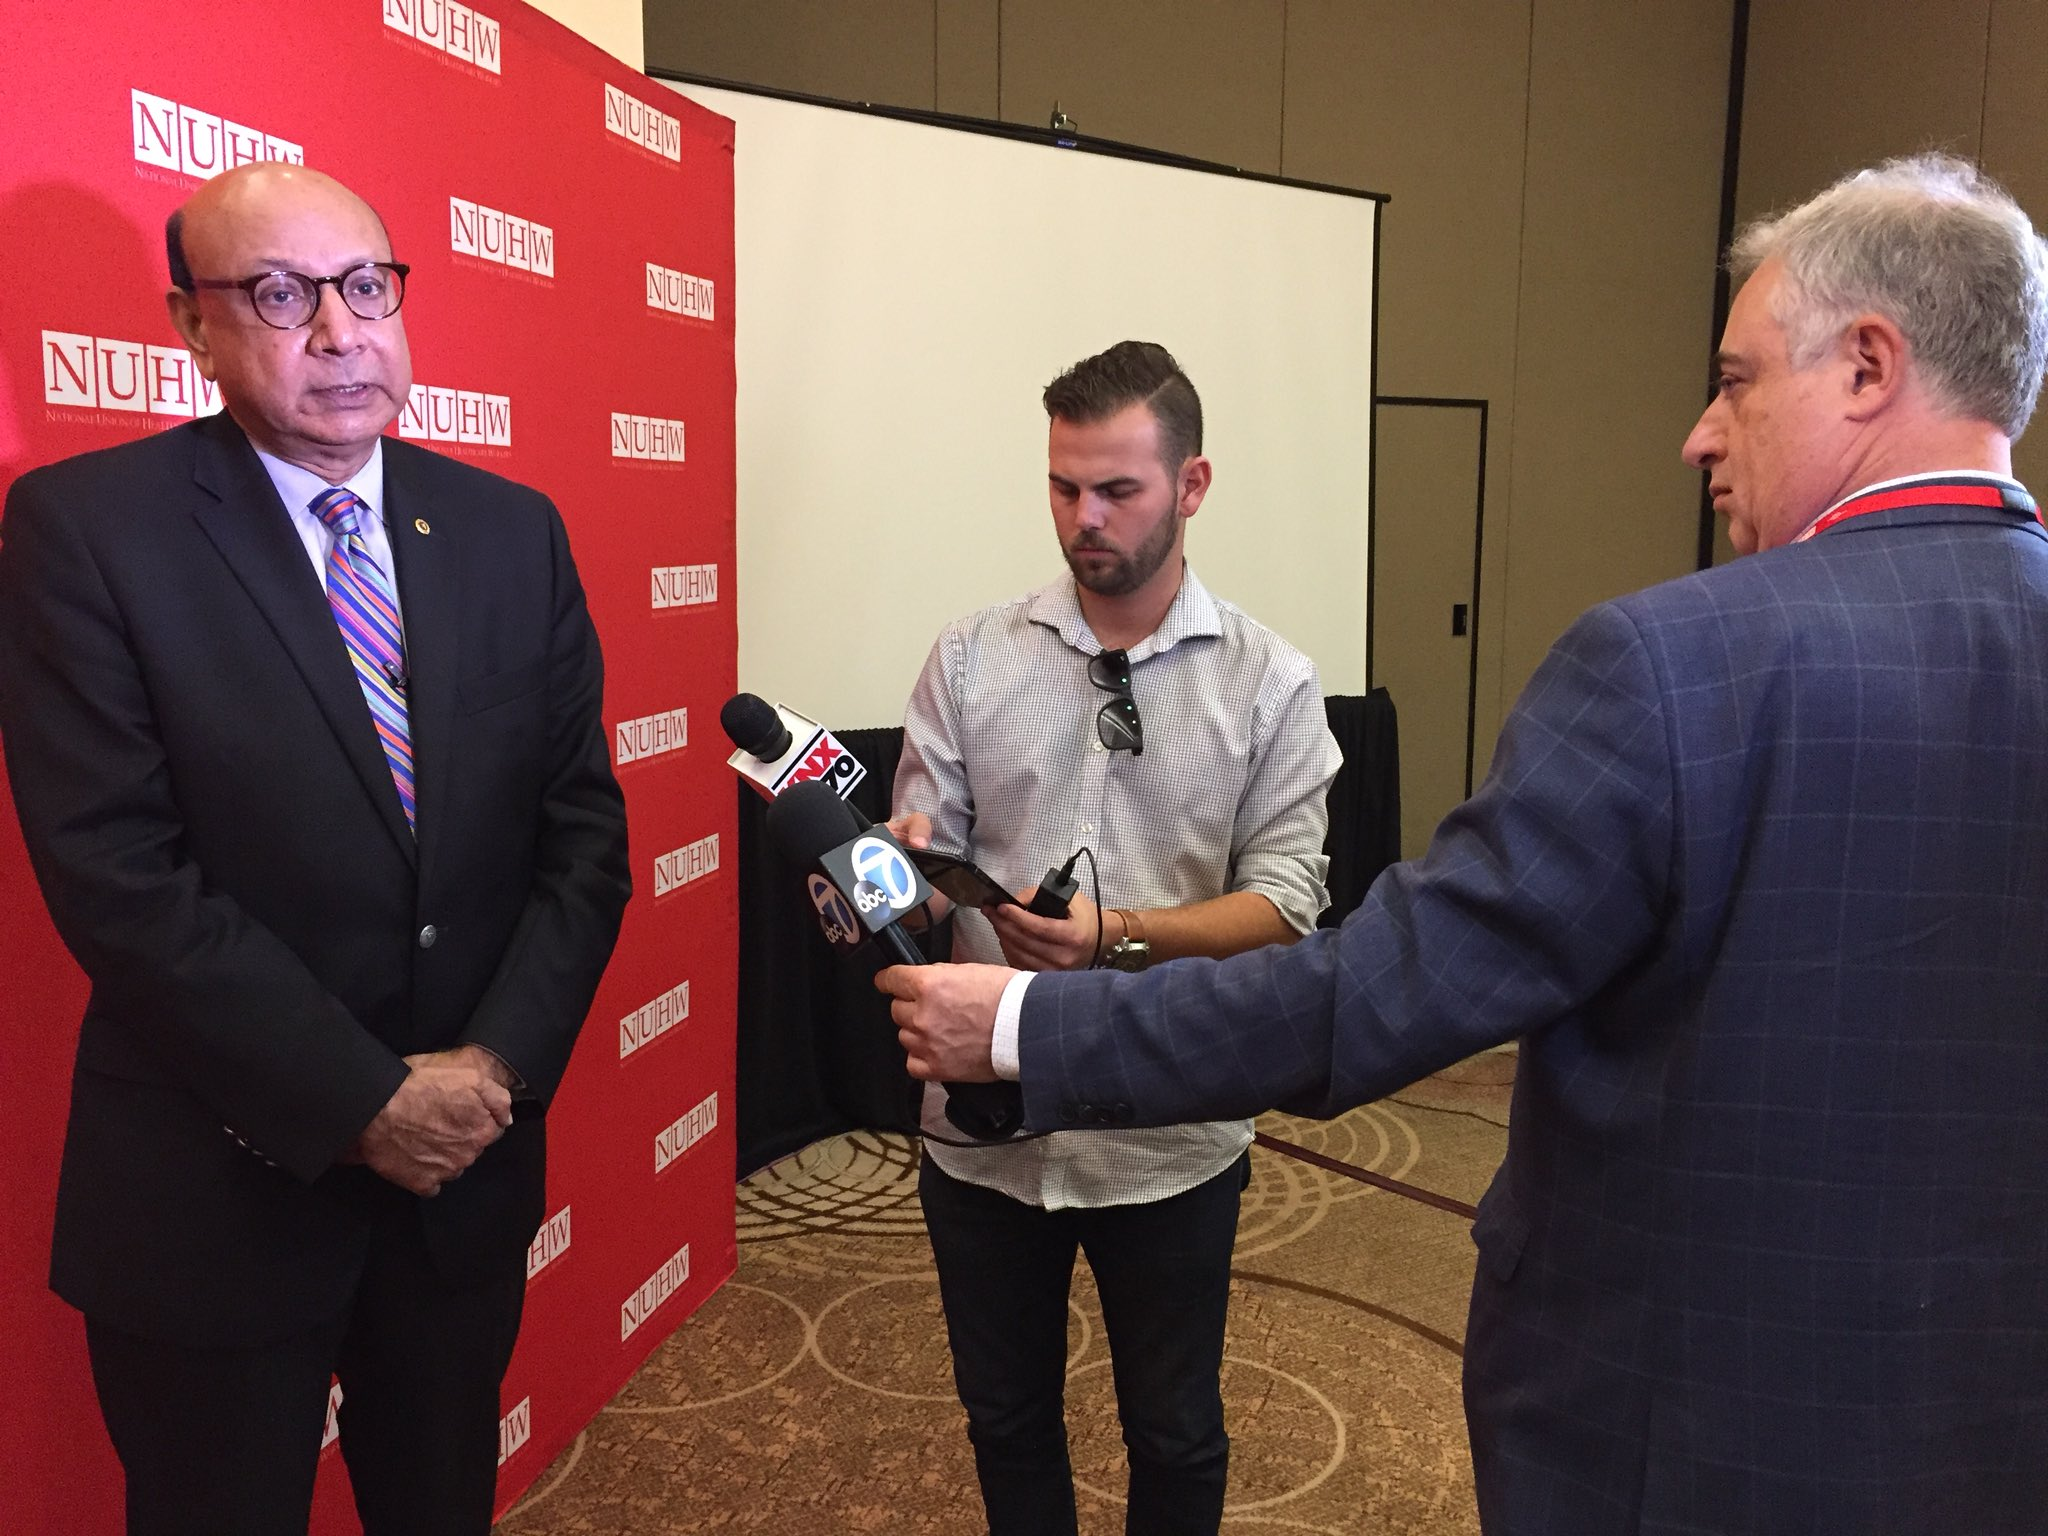 Khizr Khan at the National Union of Healthcare Workers conference in Anaheim on Saturday. (Phil Willon / Los Angeles Times)